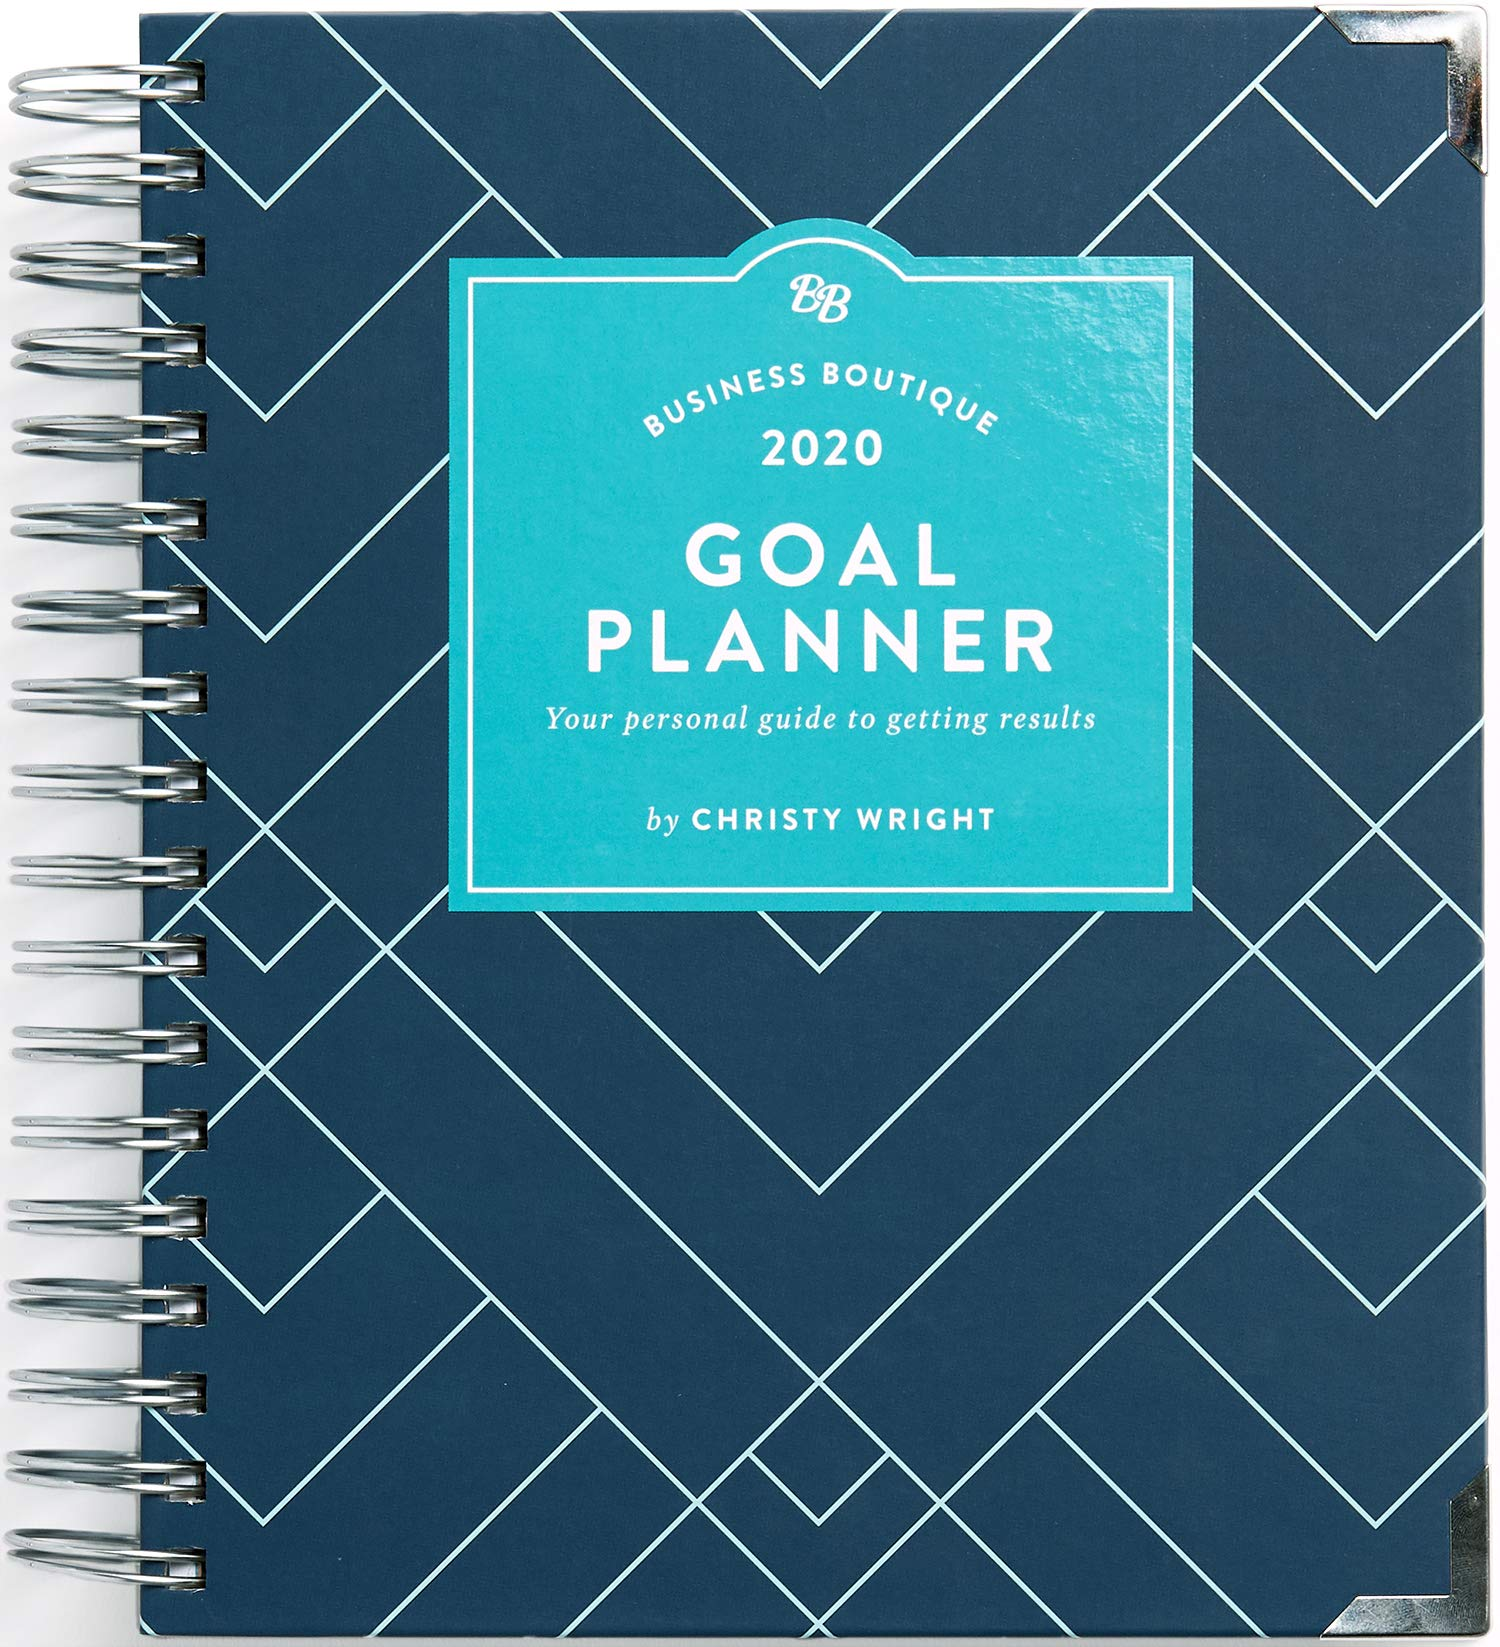 Business Boutique Goal Planner 2020  Your Personal Guide To Getting Results